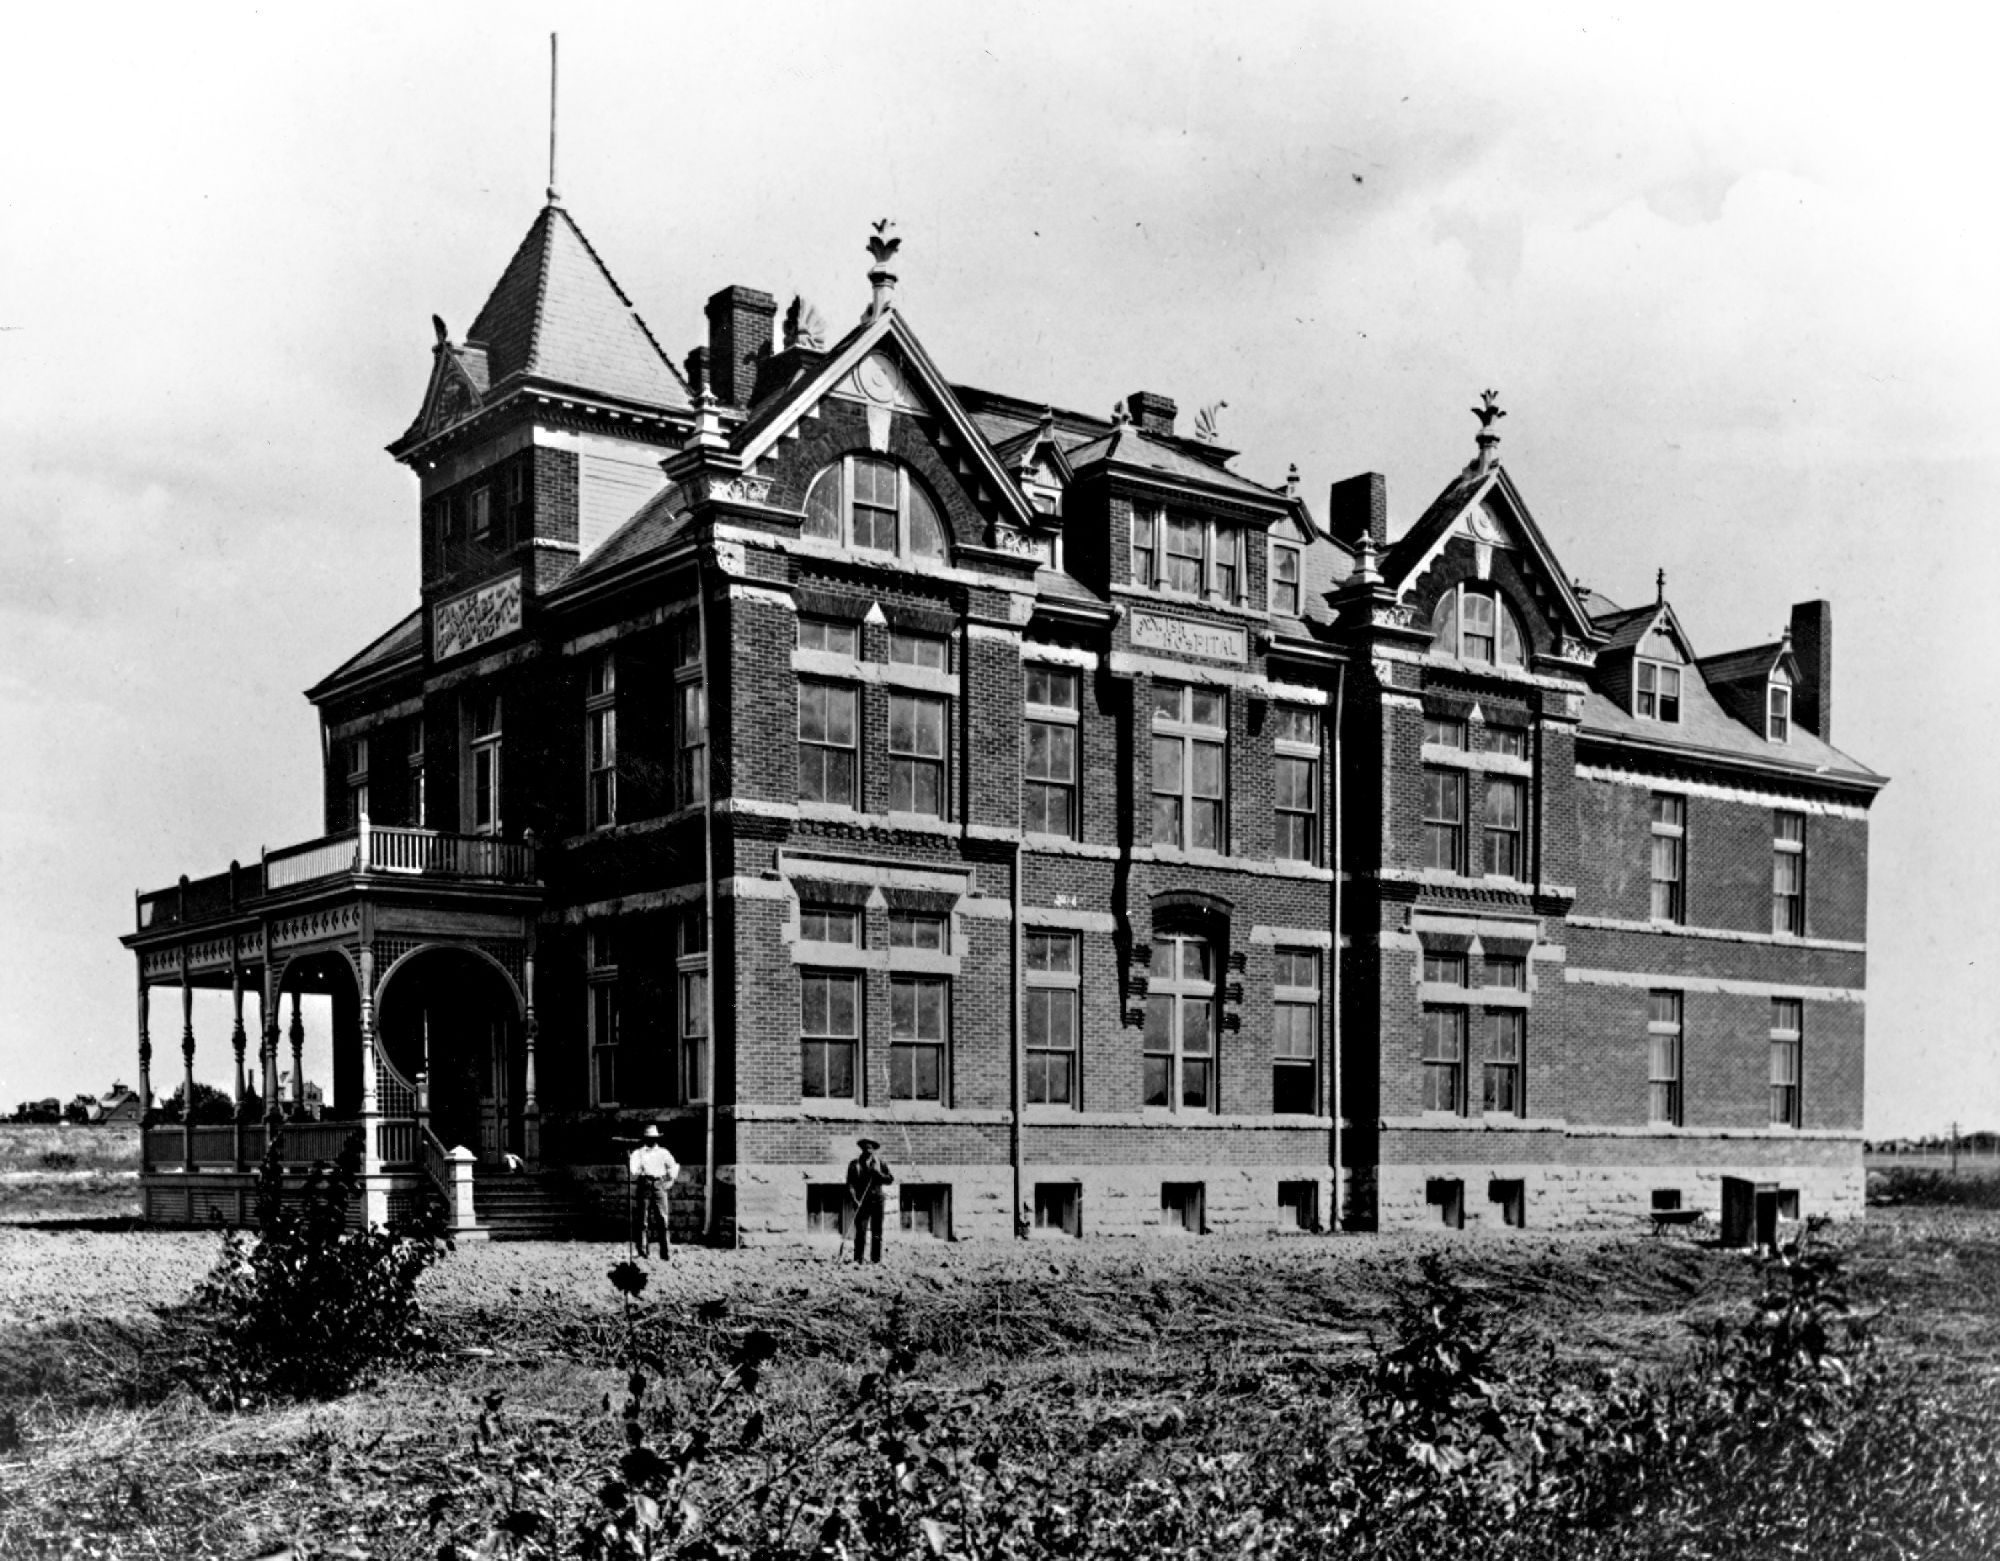 """Exterior of the first National Jewish Hospital building (The Frances Jacobs Hospital),"" University Libraries Online Exhibits, accessed July 17, 2016, http://digital.library.du.edu/librariespresents/items/show/3188."